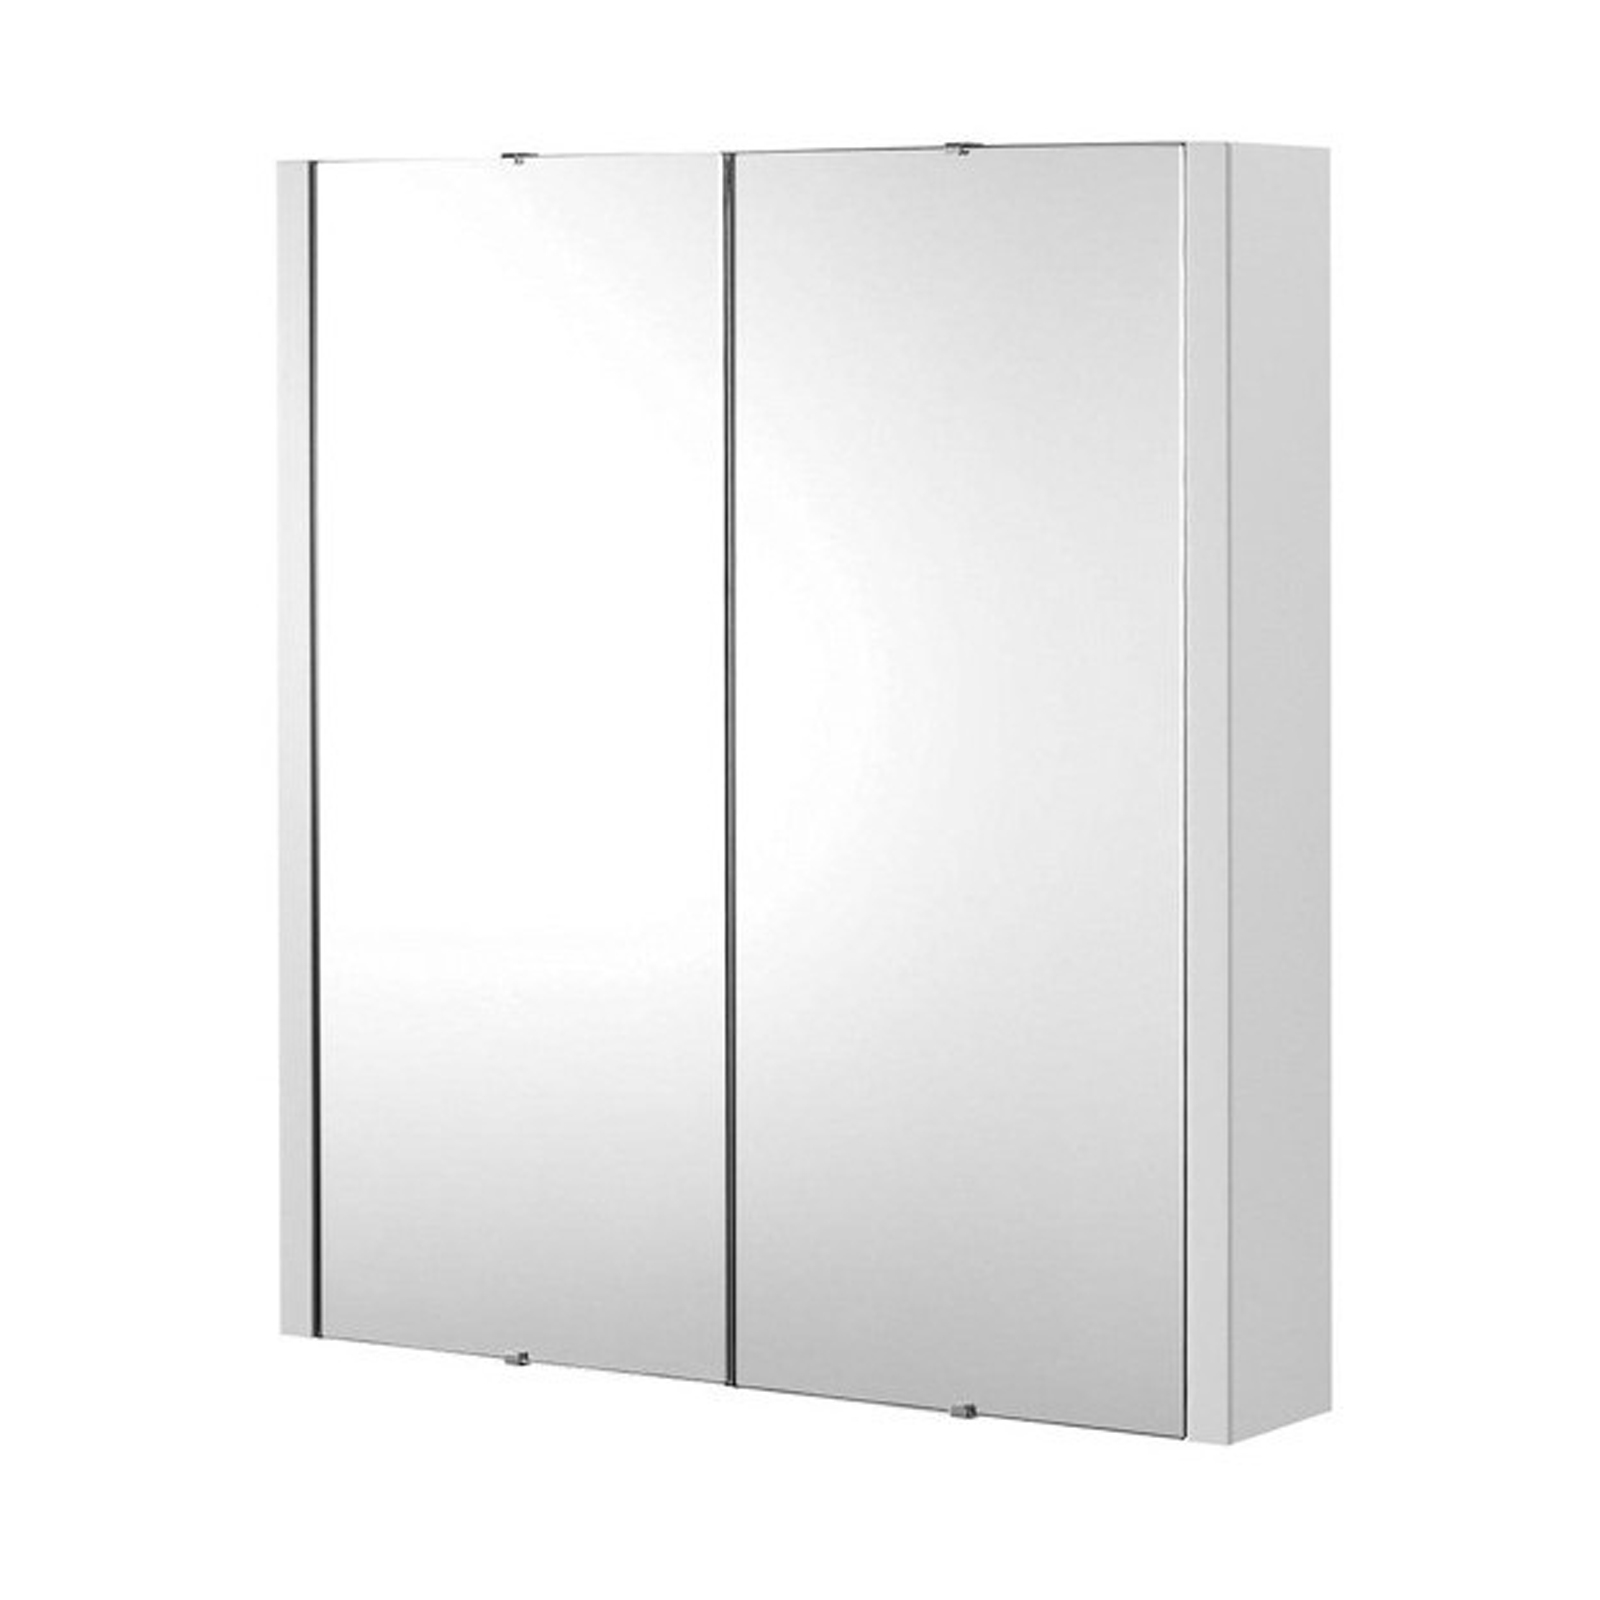 White Gloss Mirrored Bathroom Cabinet